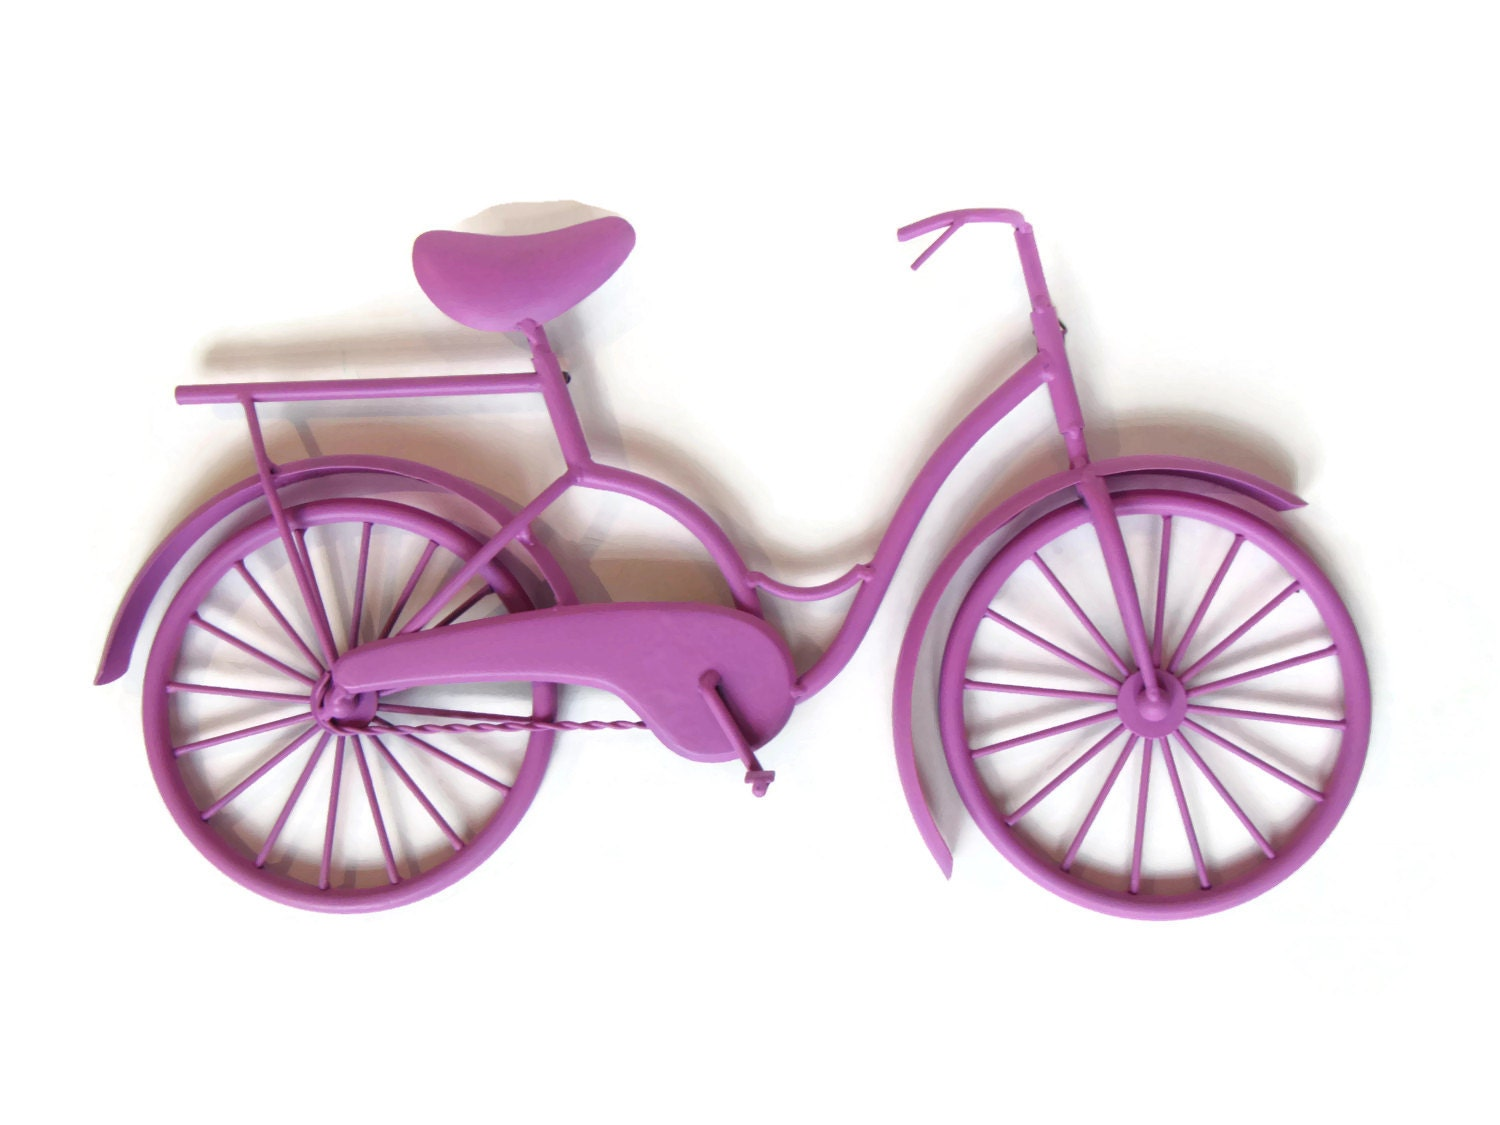 Metal Wall Decor Bicycle : Metal bicycle wall art beach cruiser hanging by